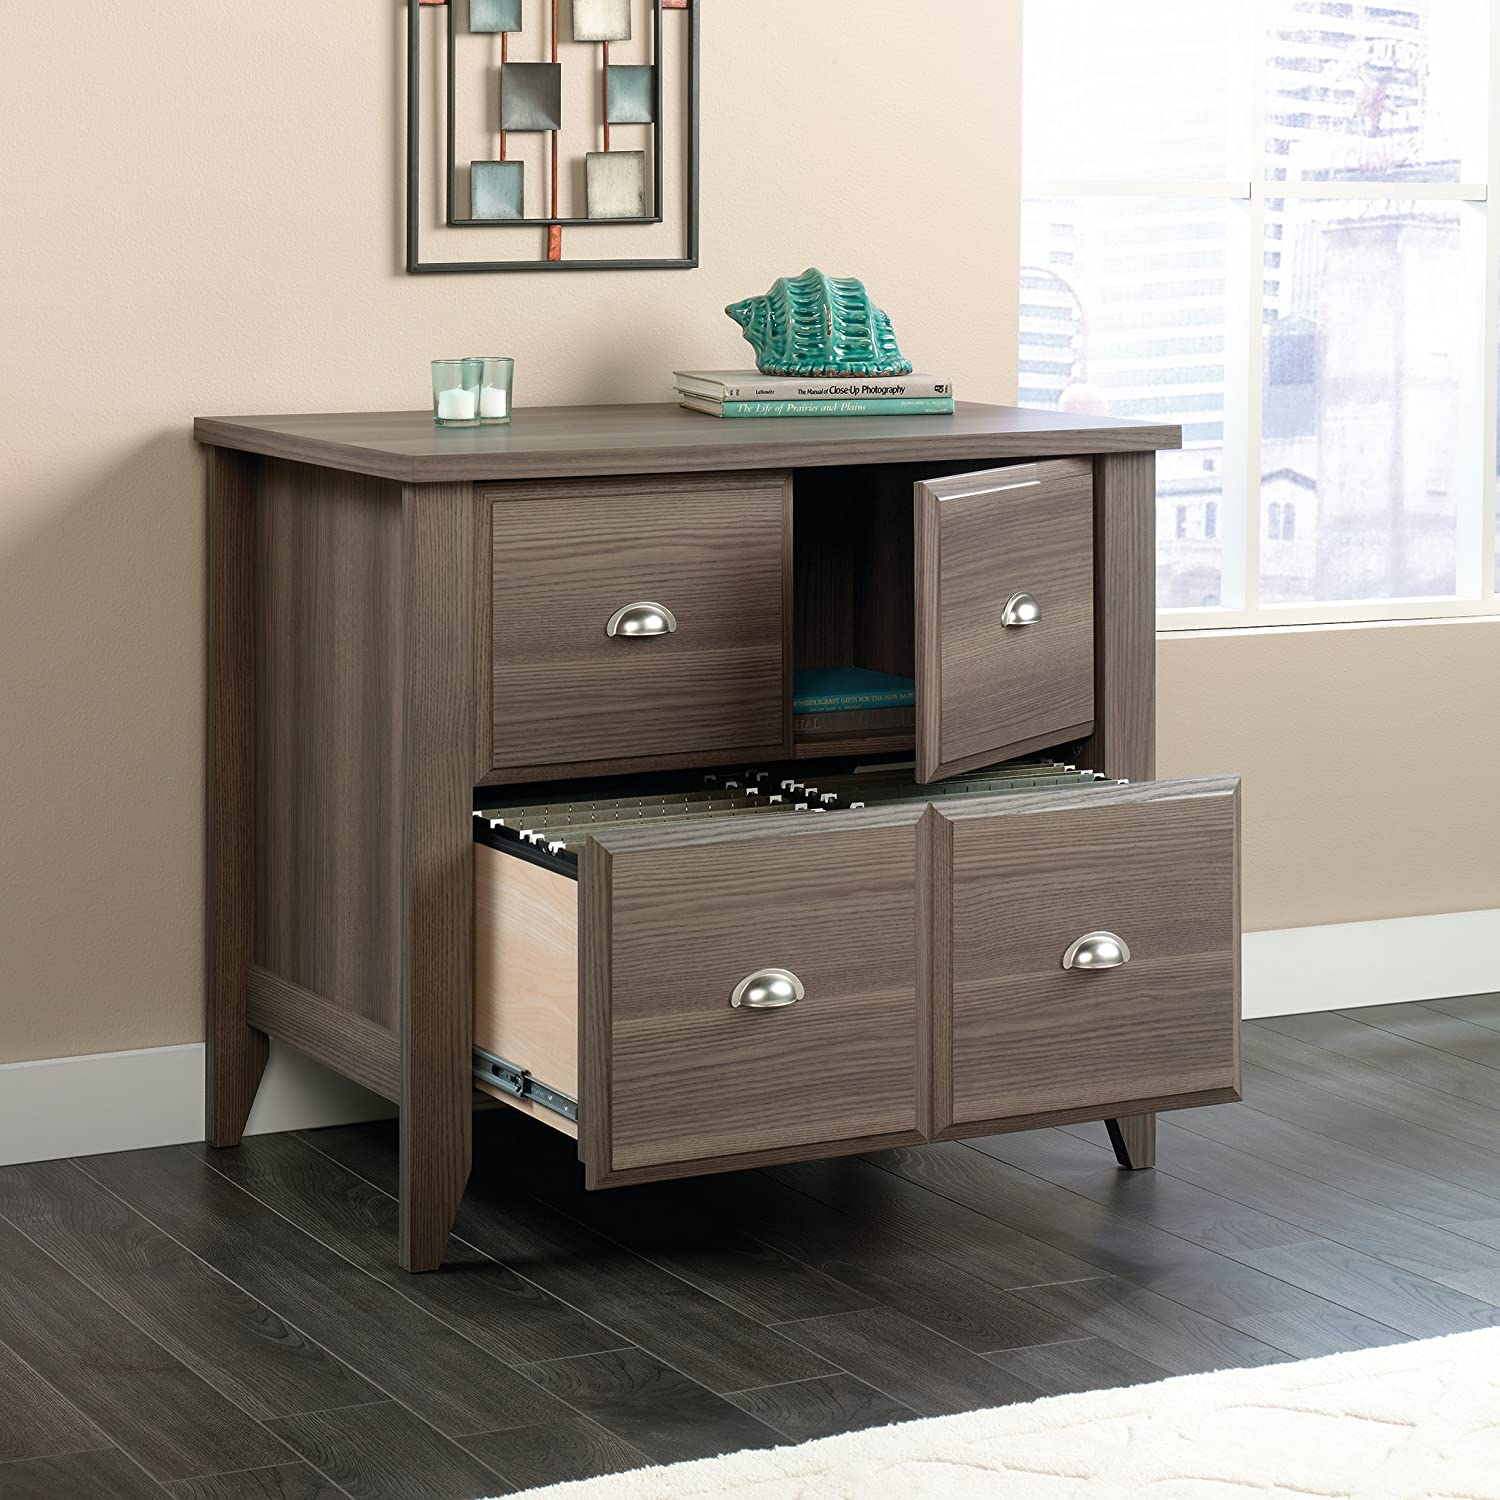 Amazon.com: sauder Shoal Creek lateral mueble archivador ...